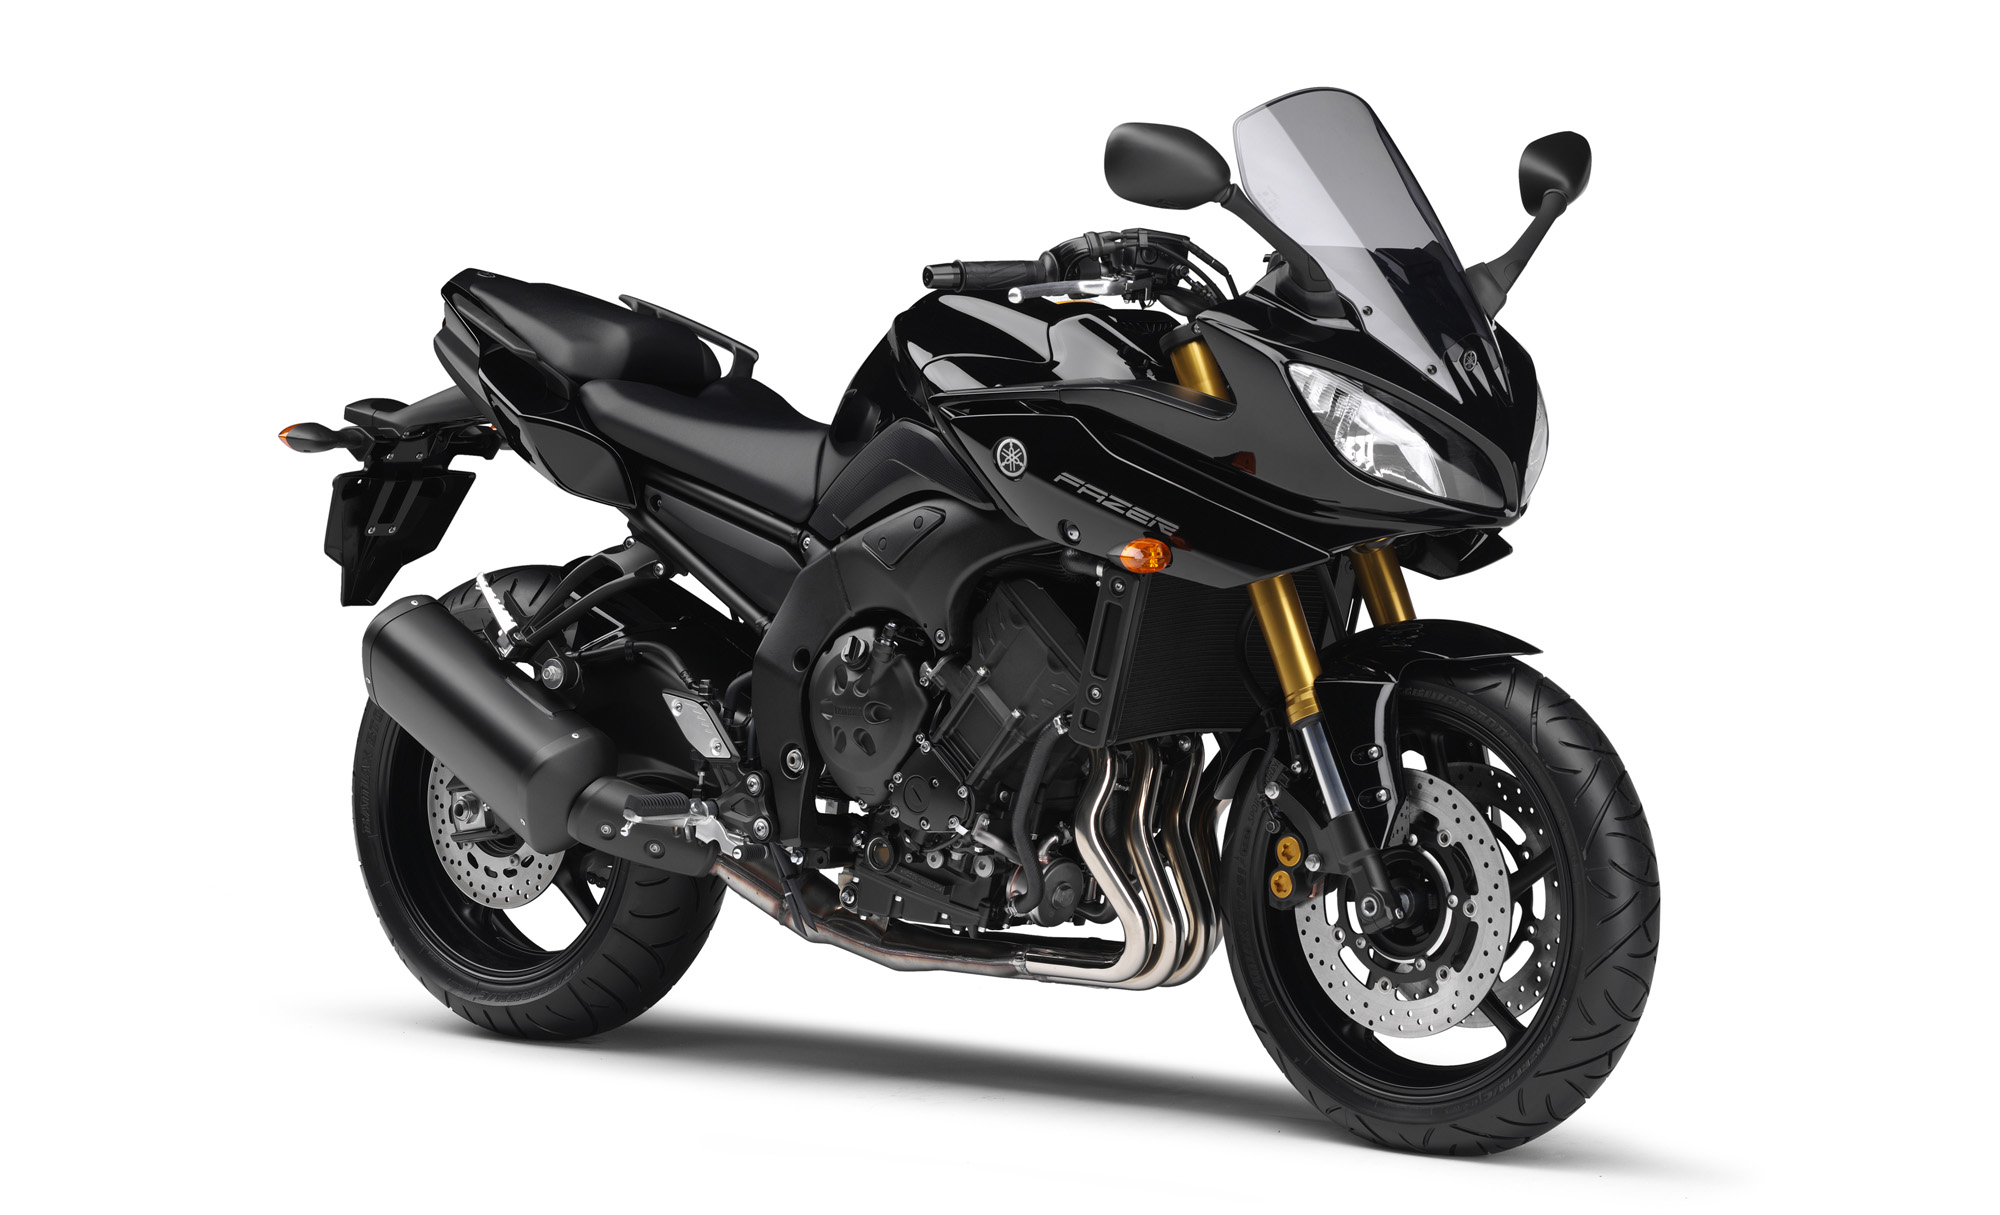 Maxresdefault likewise Yamaha Fz Eu Race Blu Action likewise Durites Aviation   Moto Yamaha Fz Occasion Blanche Noire Dor C A E additionally Adbxi as well Maxresdefault. on yamaha fz8